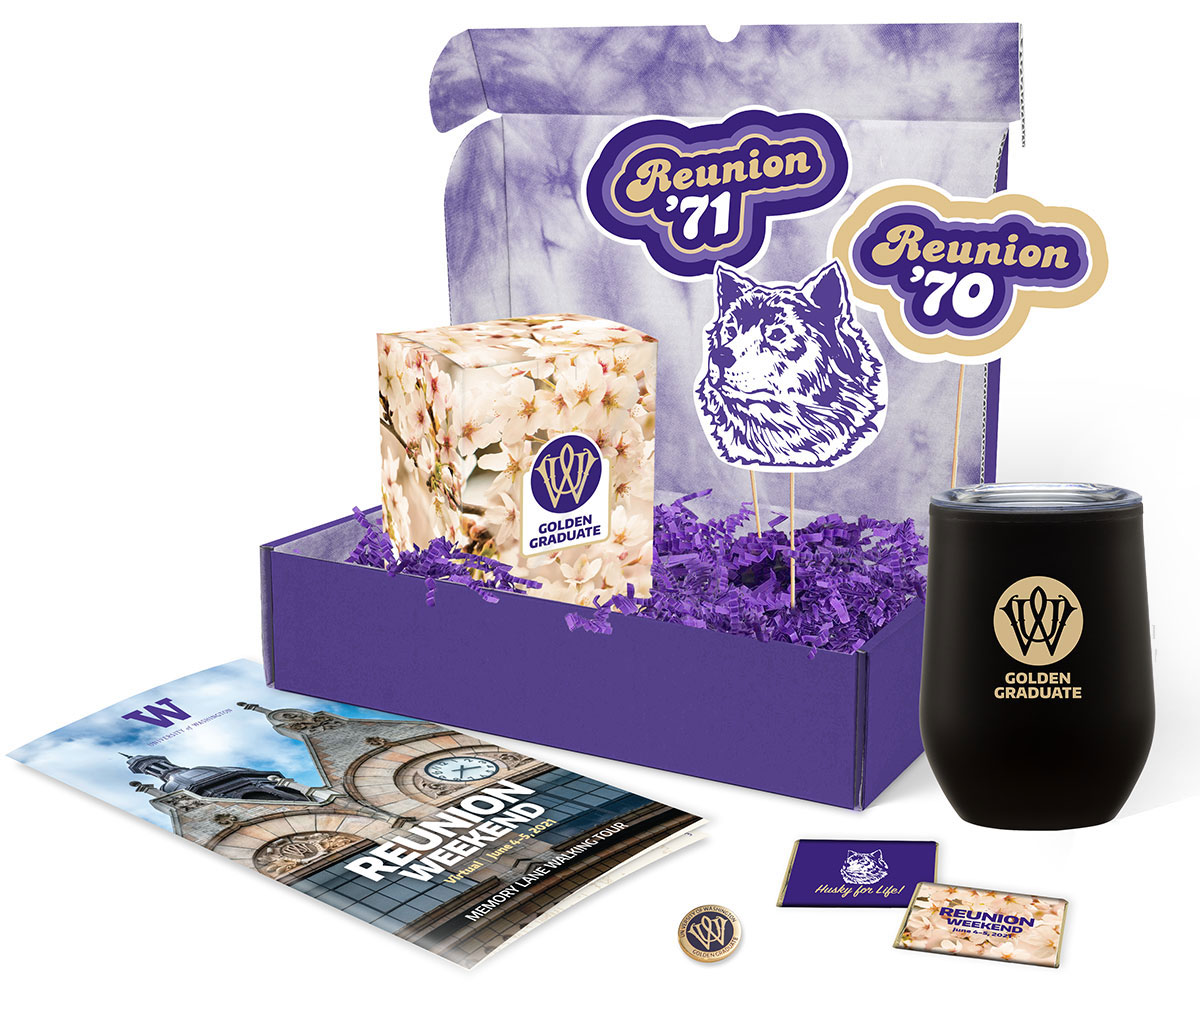 Purple tie-dye box with wine tumbler, chocolates, party props, pin and program.